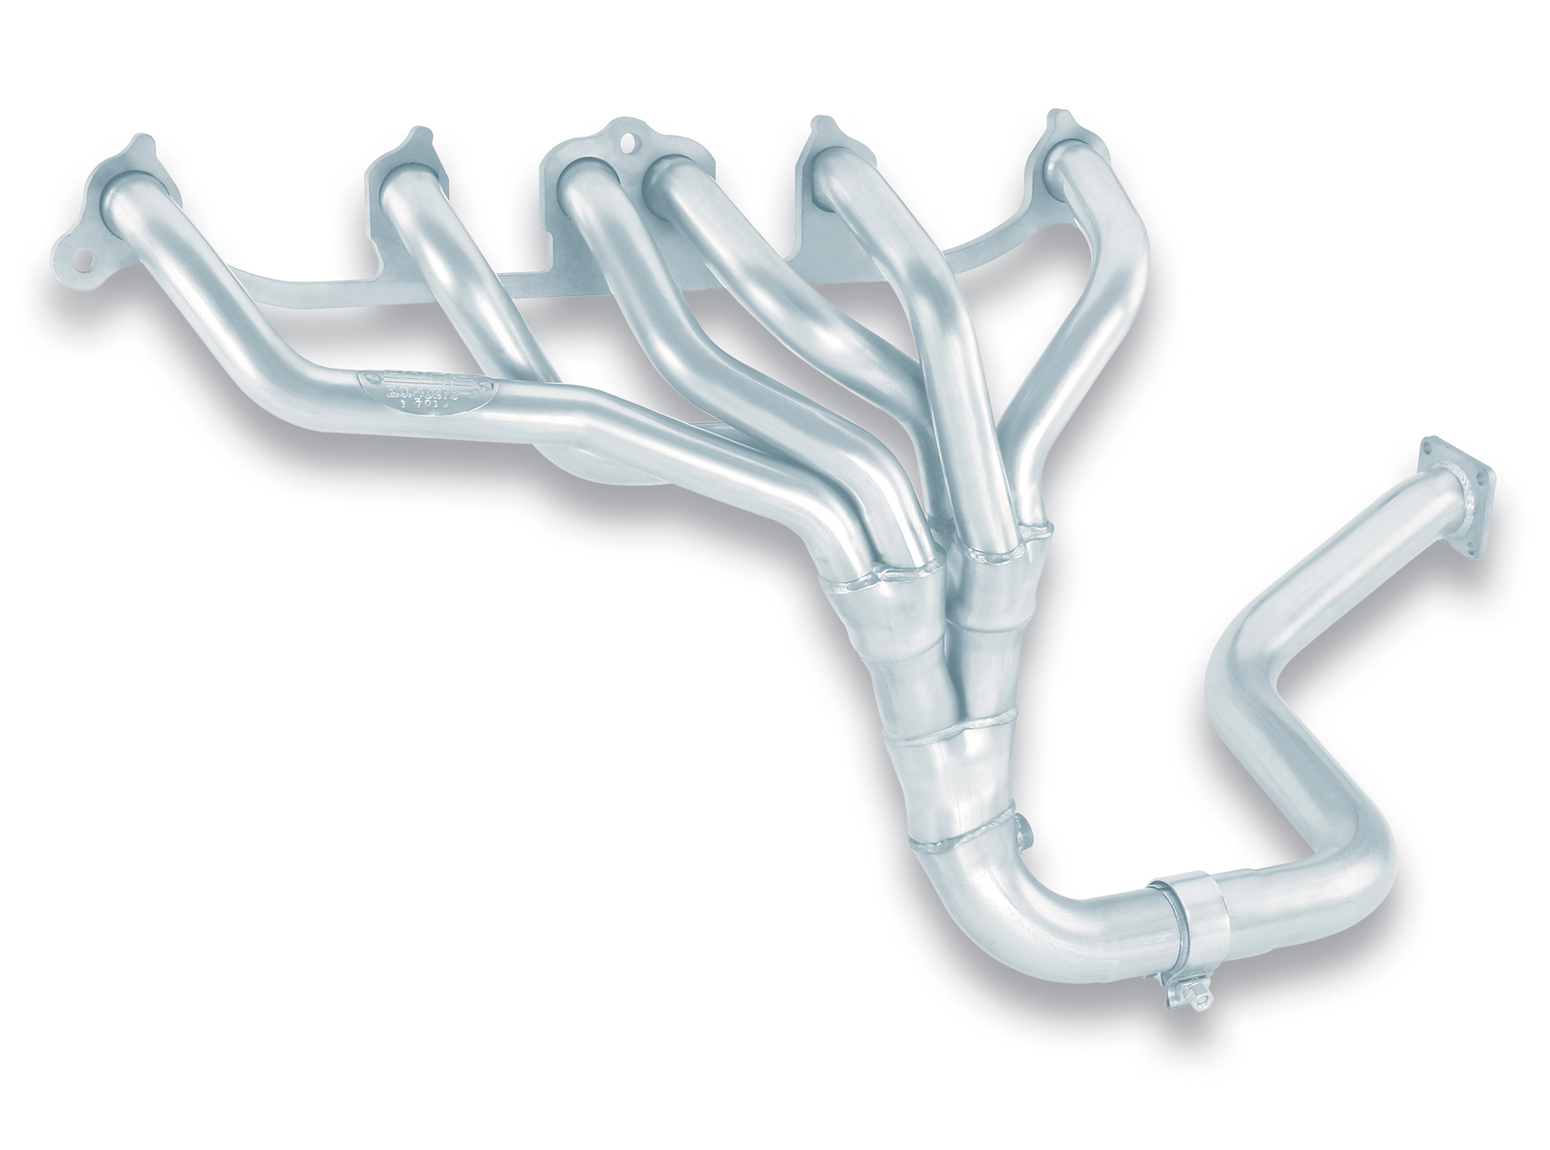 Jeep Wrangler 4.0l 6cyl 1991-1992 Borla Exhaust Headers